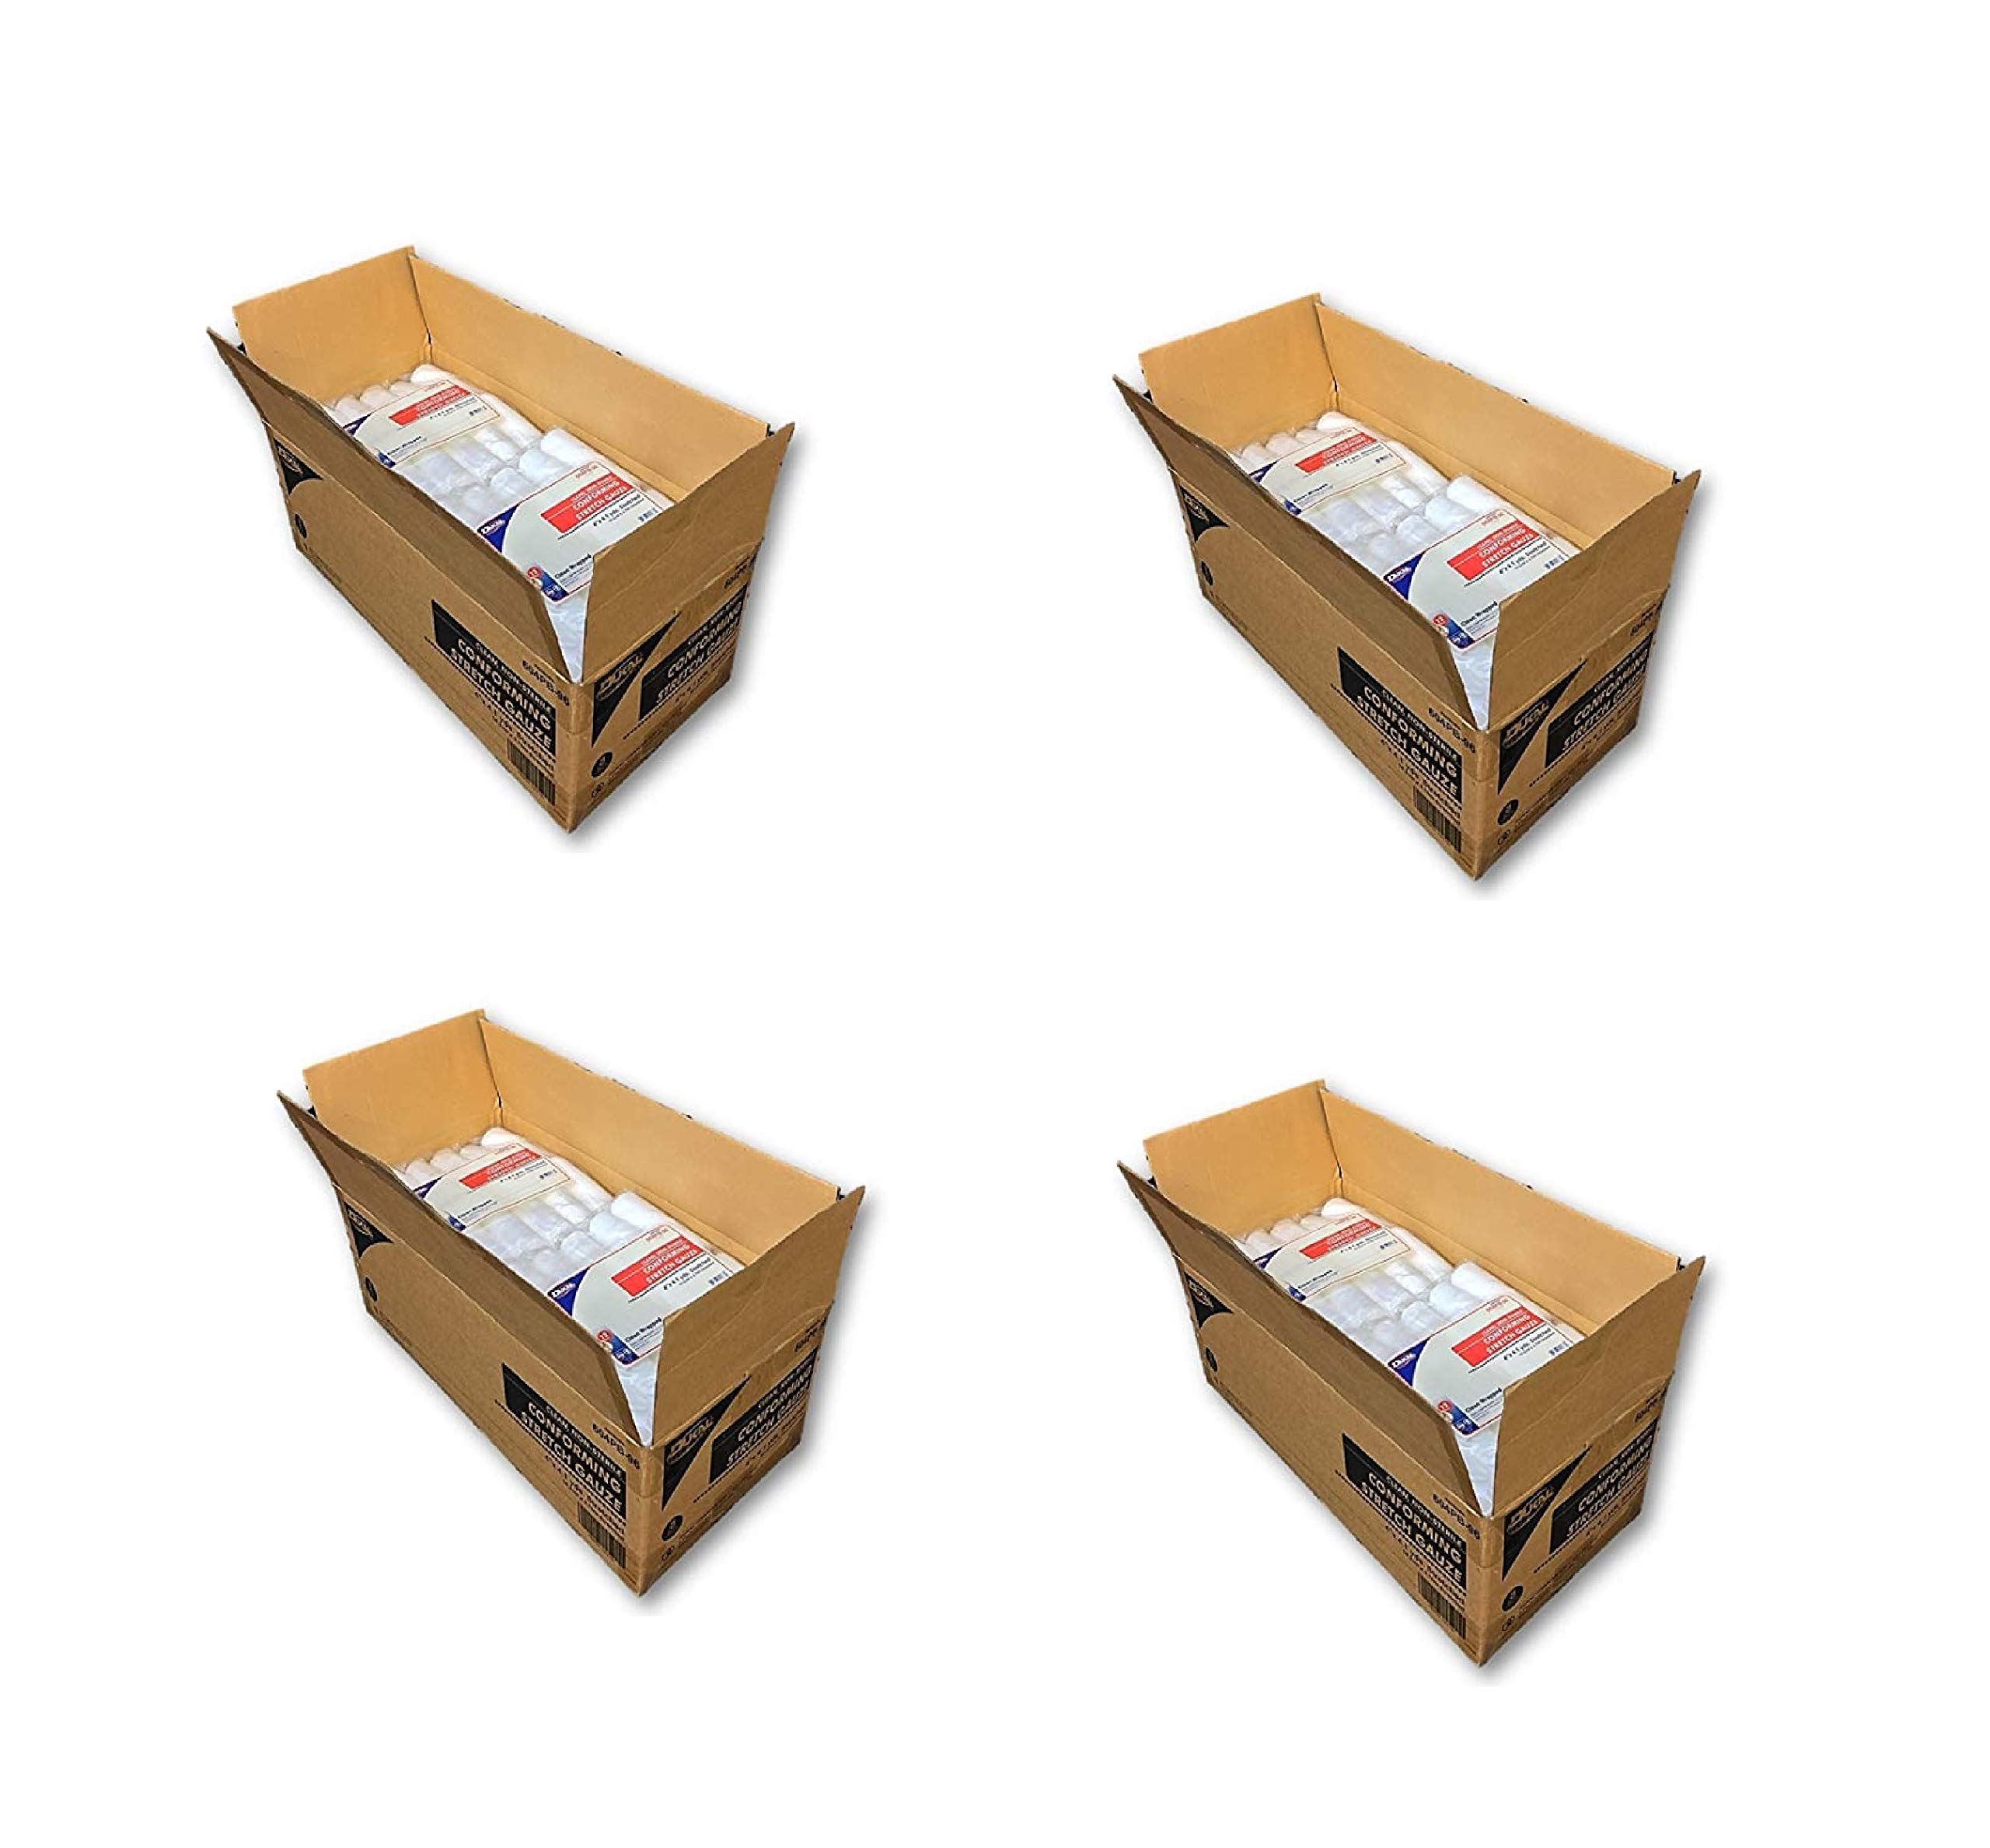 Case of Conforming Stretch Gauze, 96 Clean Wrapped Rolls, 4''x4.1yds (4 Pack)